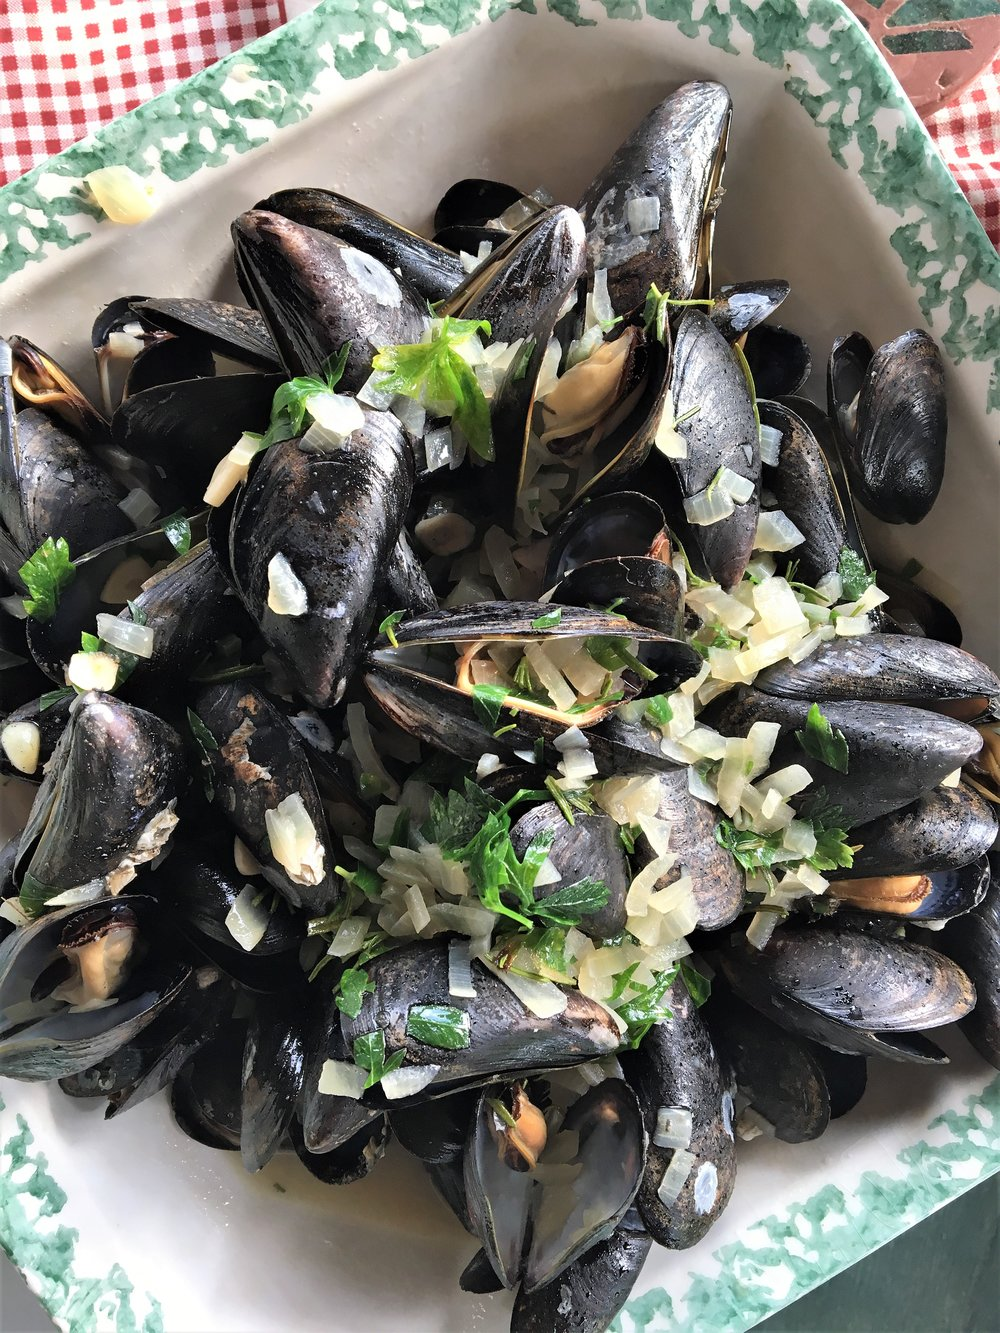 Pile of Mussels